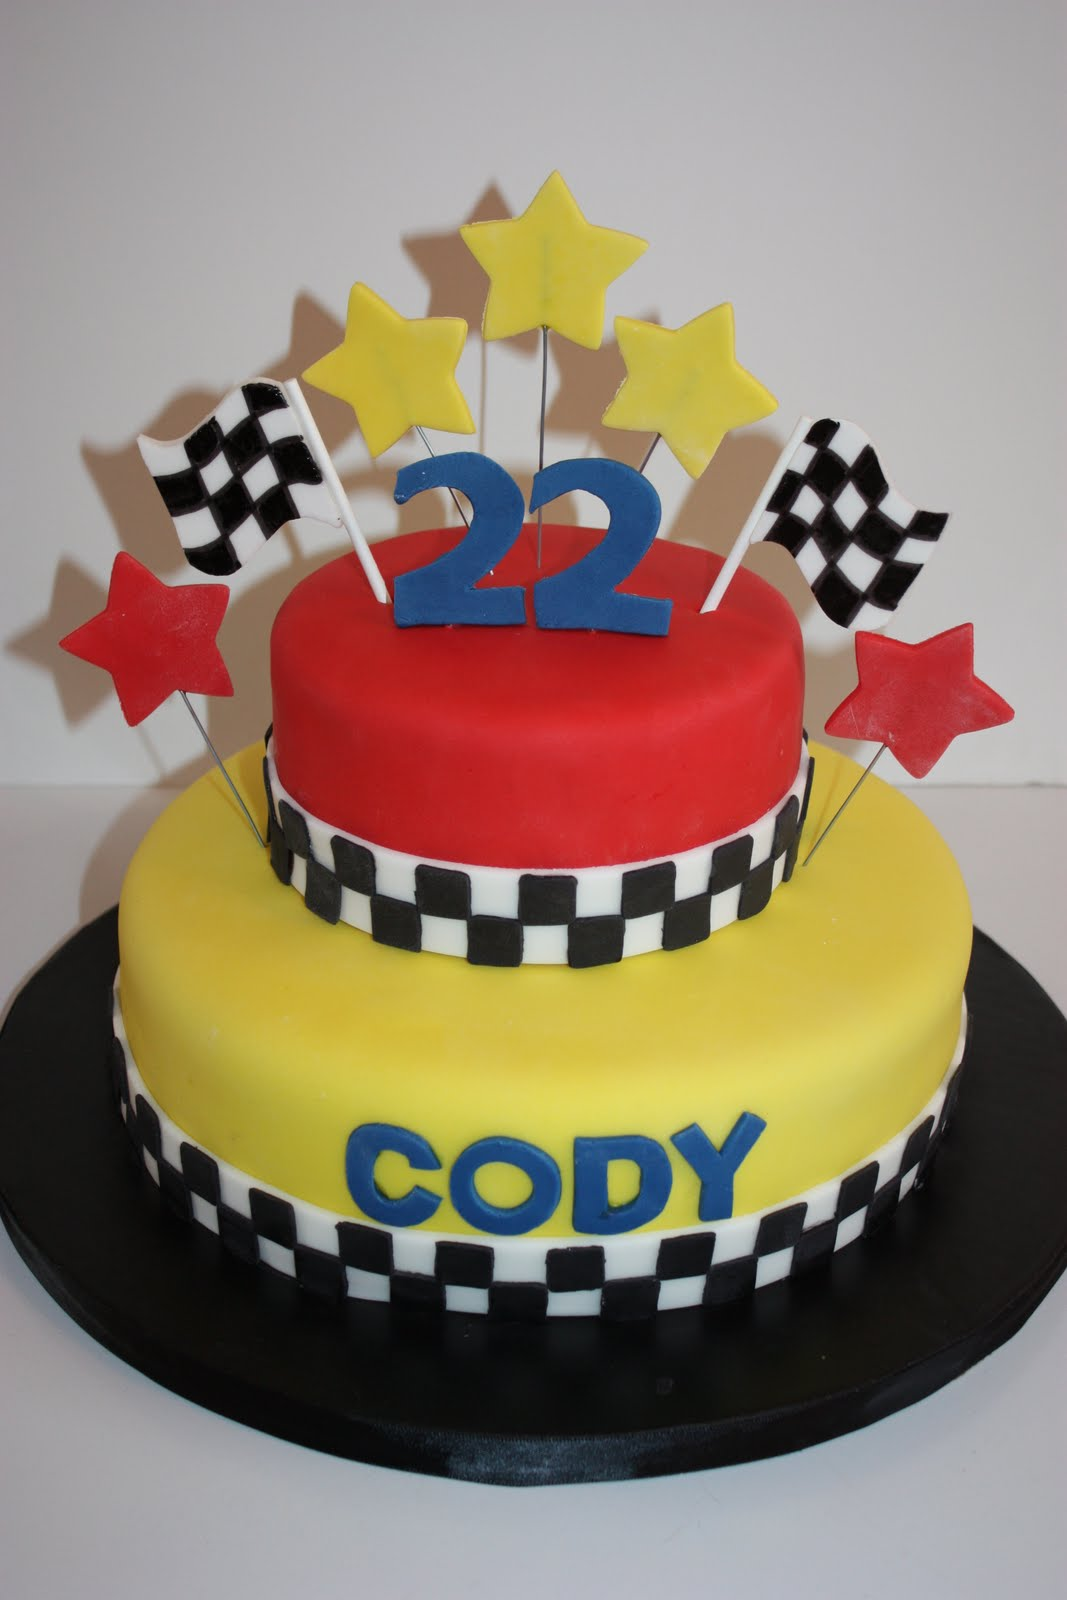 Cake Decorating Racing Car : Whimsical by Design: Cody s Racing Cake